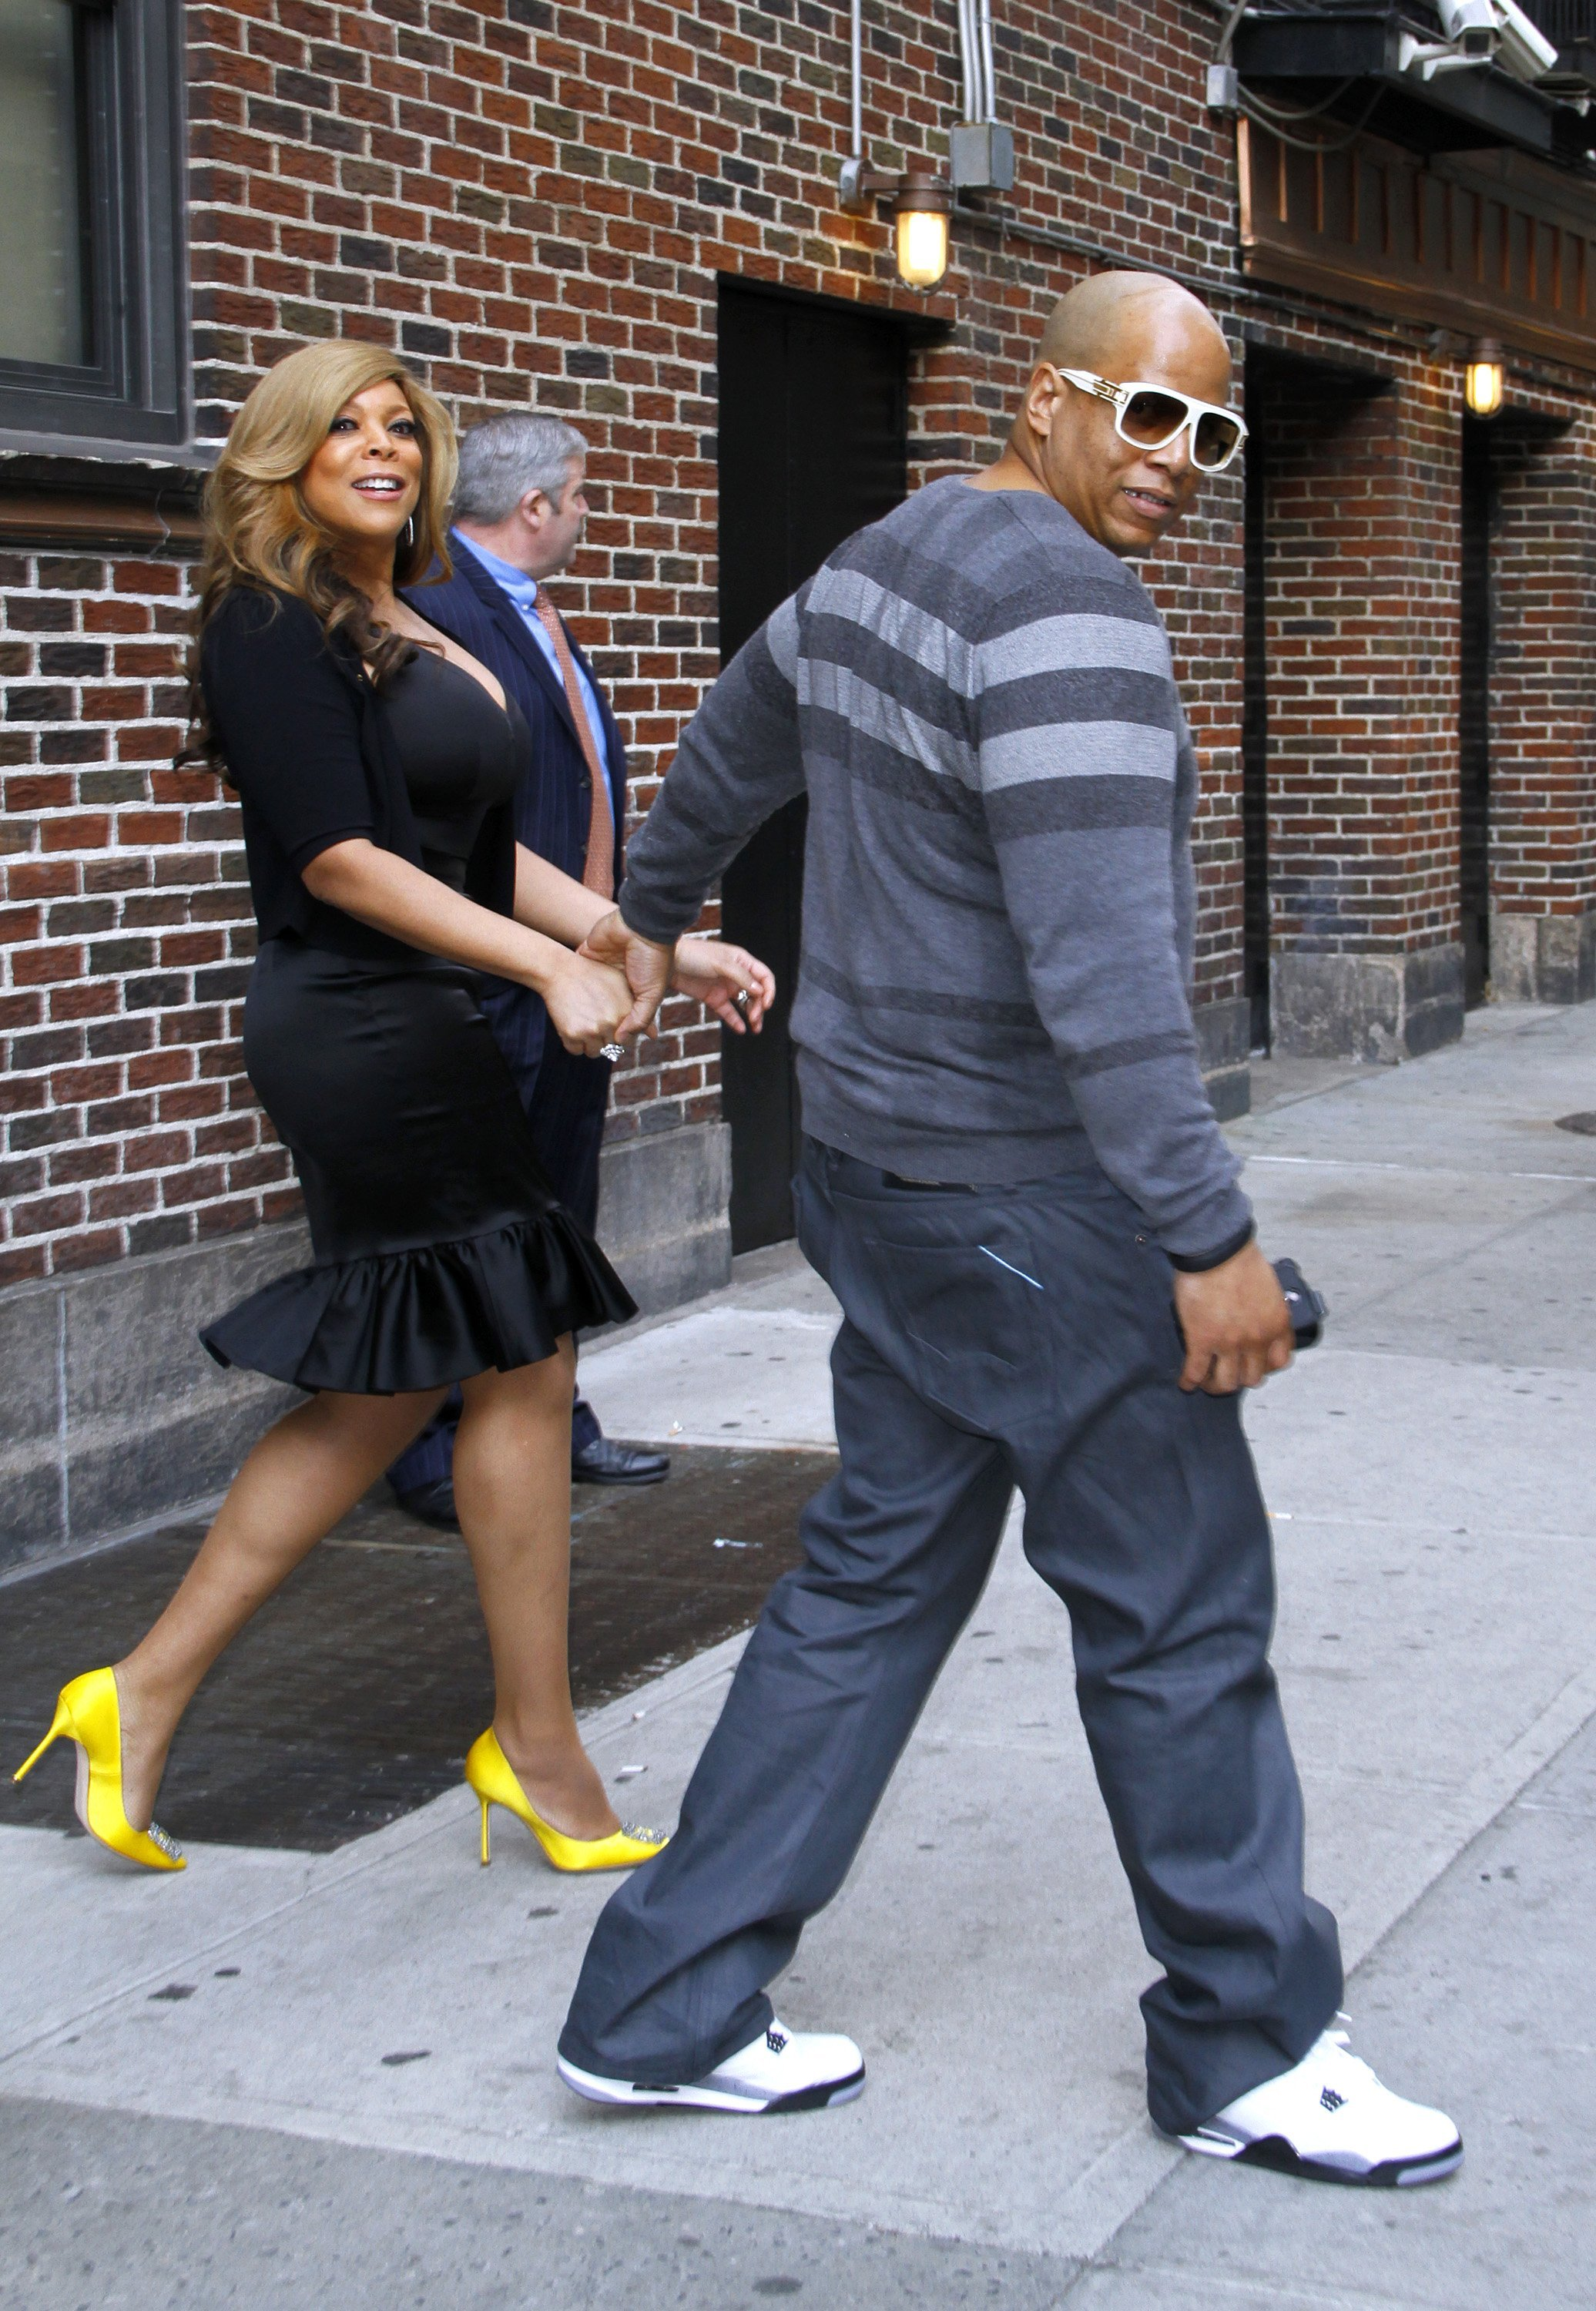 Wendy Williams & Kevin Hunter in New York City on April 24, 2012. | Photo: Getty Images